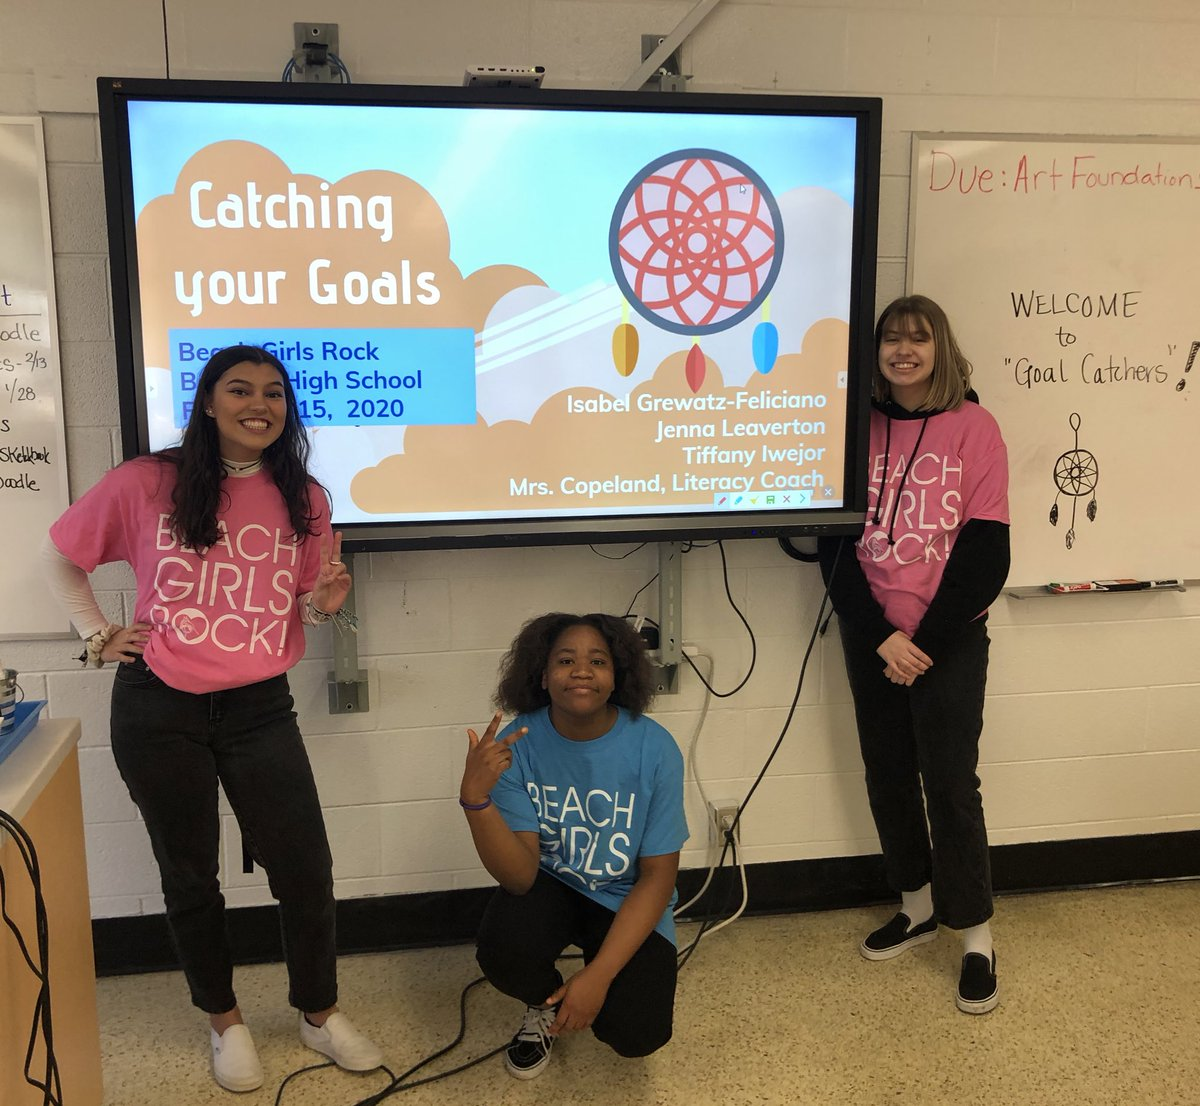 We are ready for #beachgirlsrock! @BHSMarlins #advocacyinaction #goalcatching